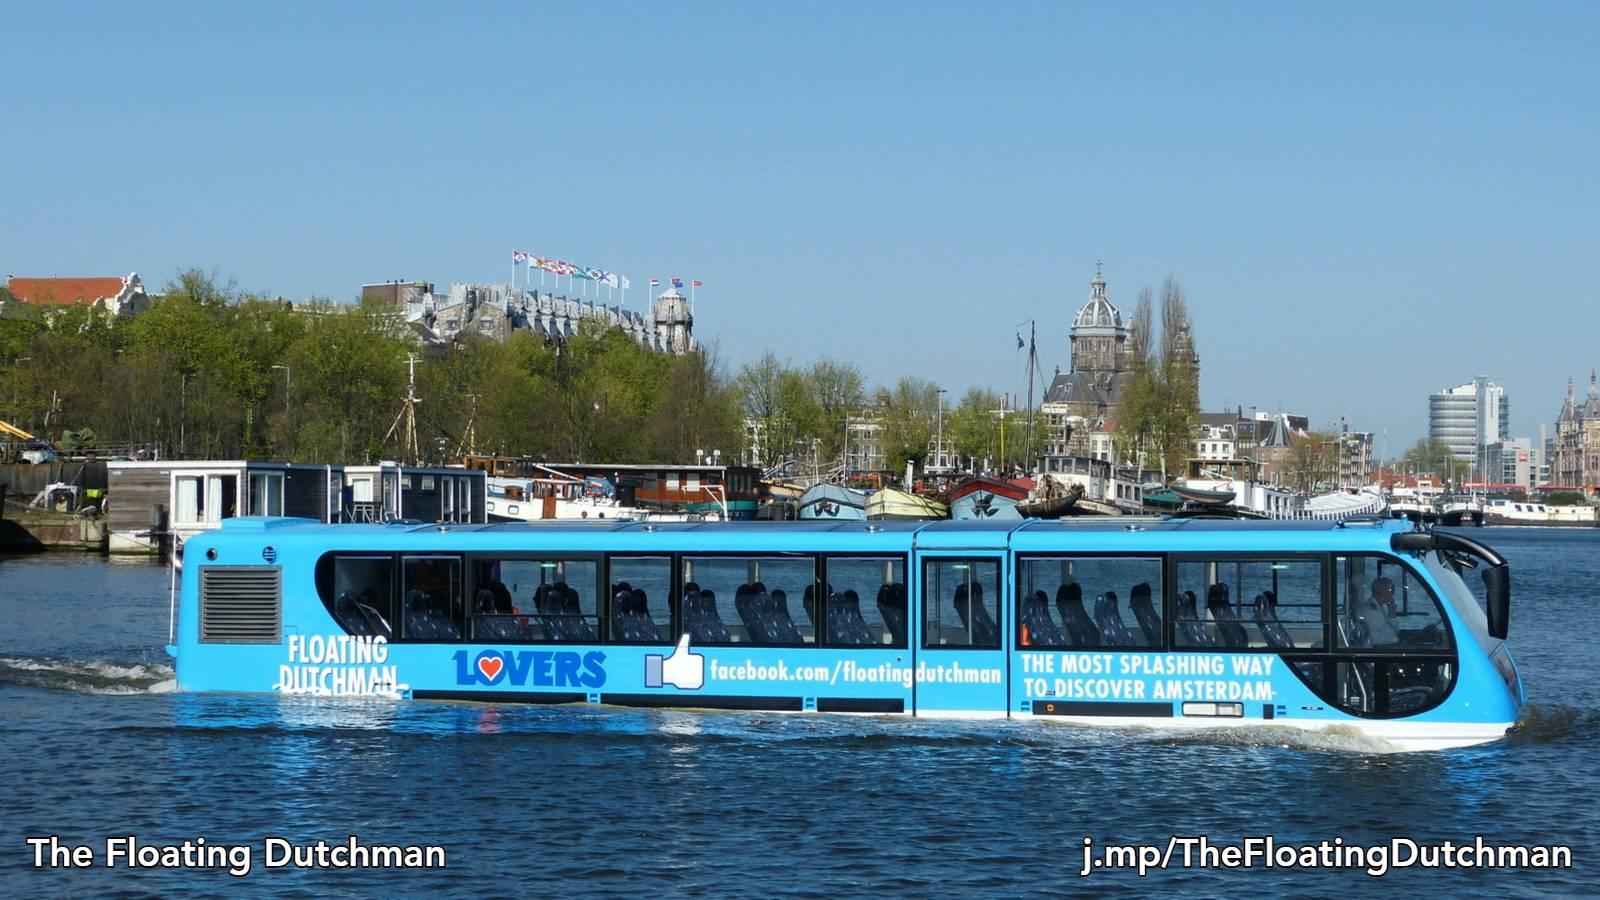 Floating Dutchman tours